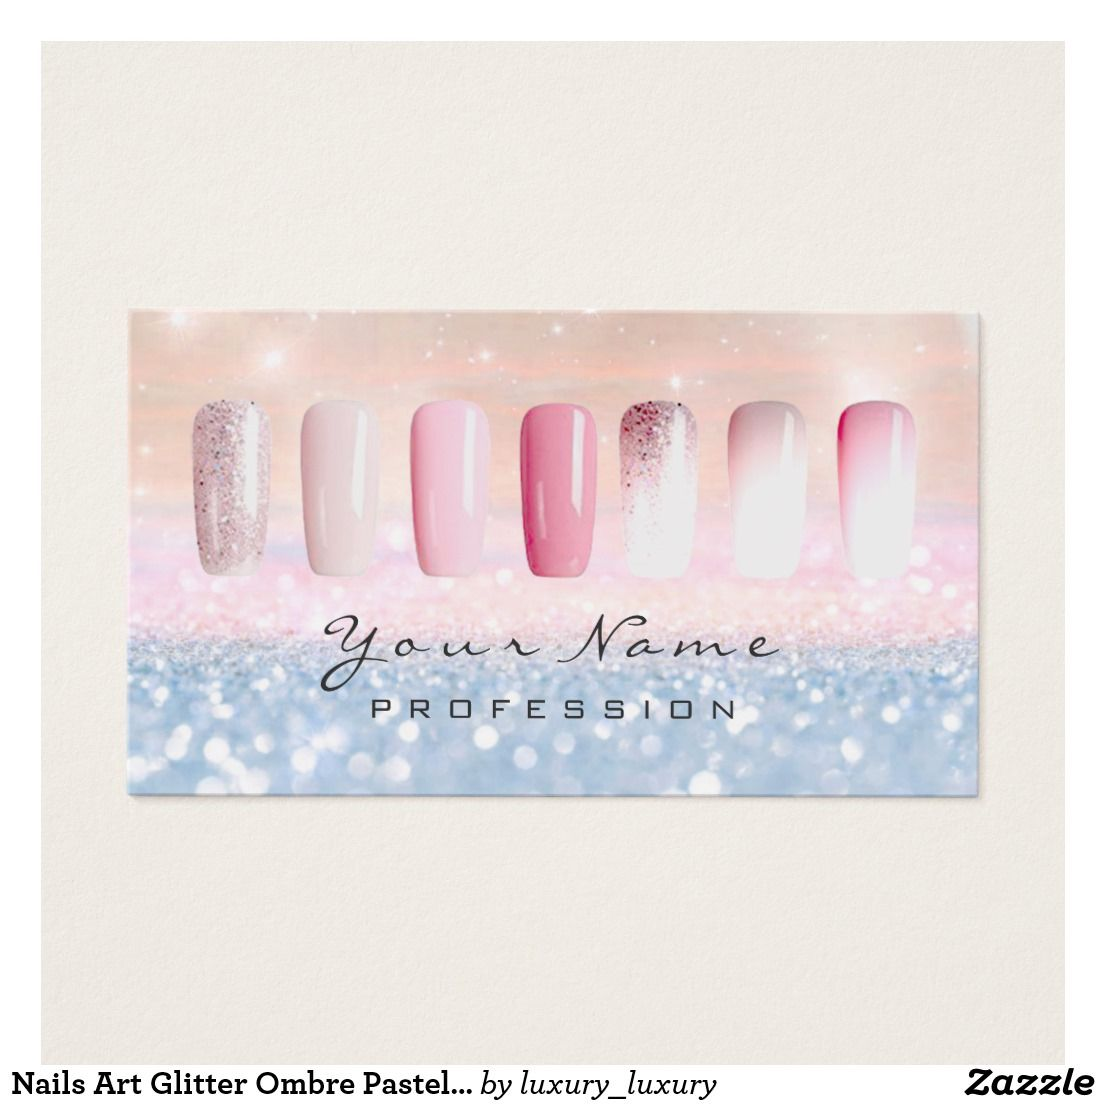 Nails Art Glitter Ombre Pastel Pink Rose Lux Business Card